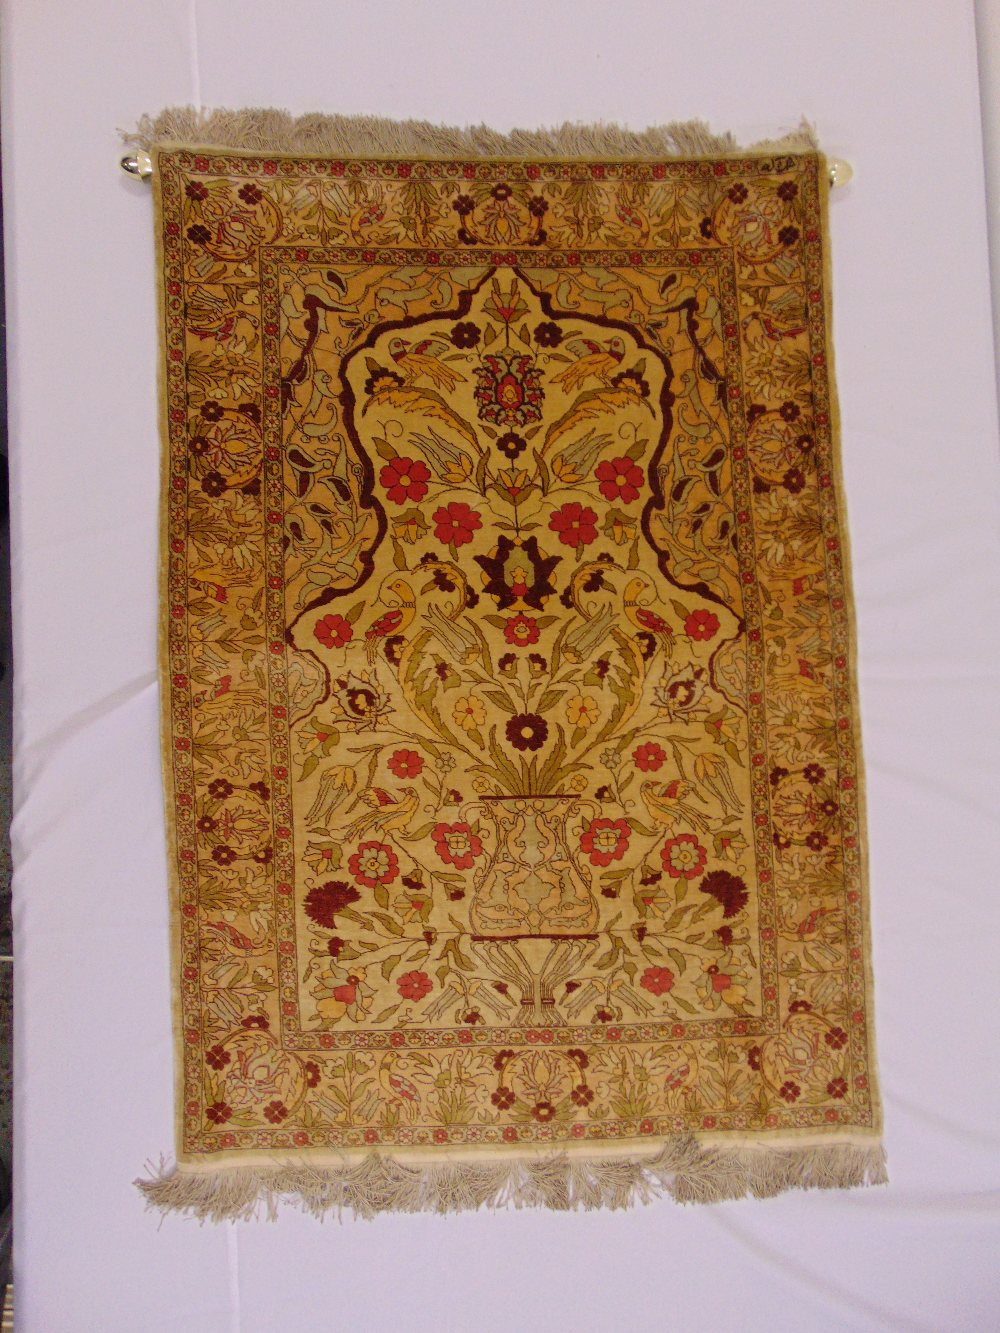 Lot 51 - A Persian silk rectangular wall hanging decorated with flowers and leaves against a tan border, 113x